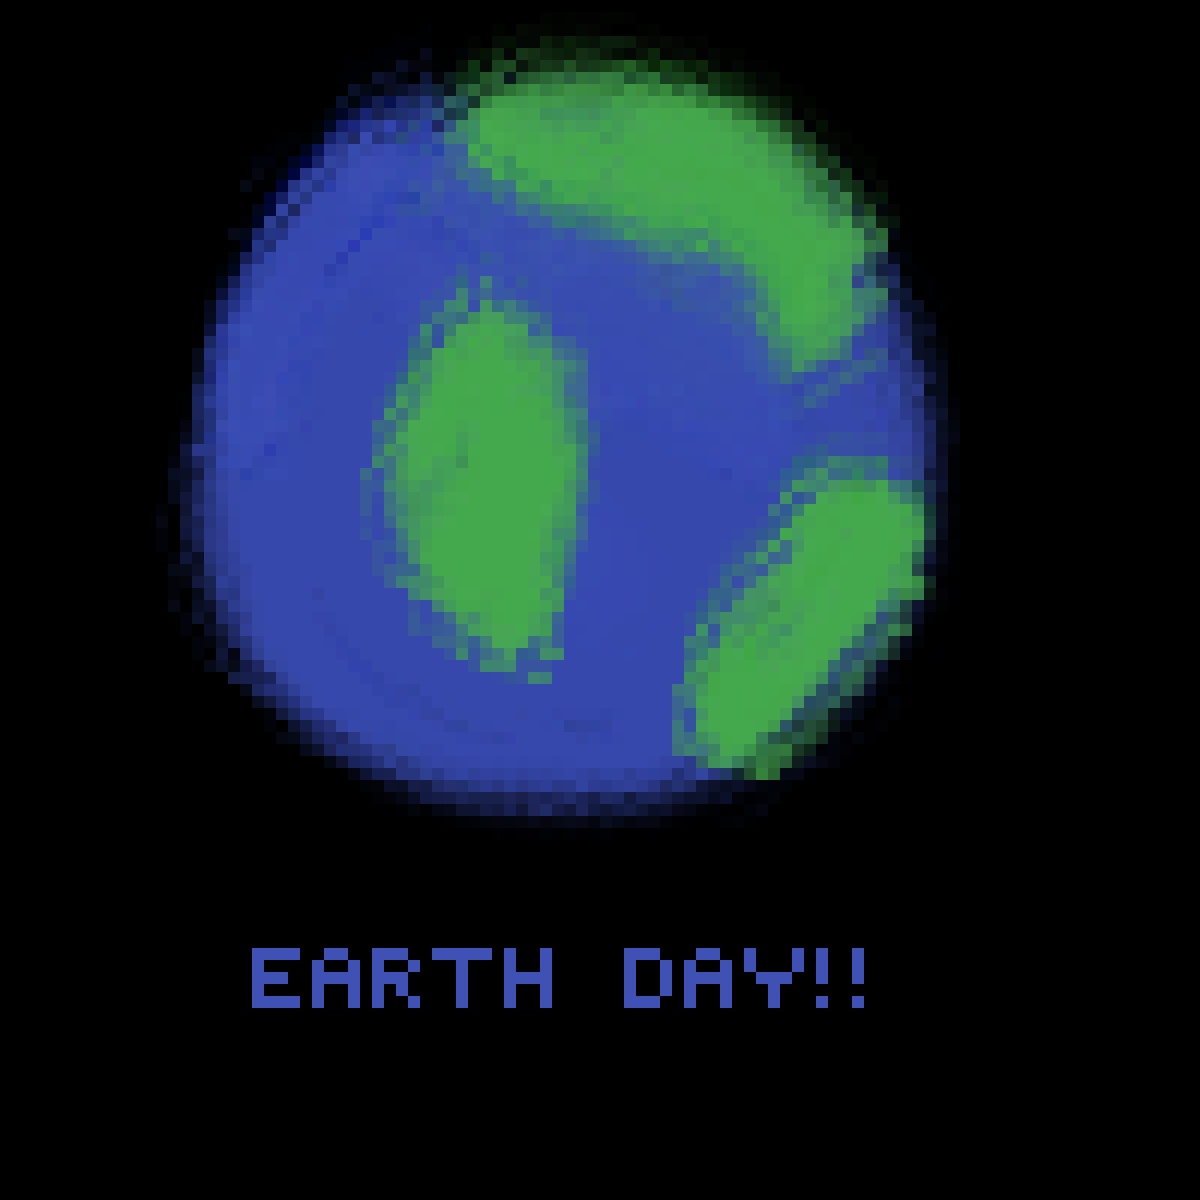 #EARTH DAYY by Person386